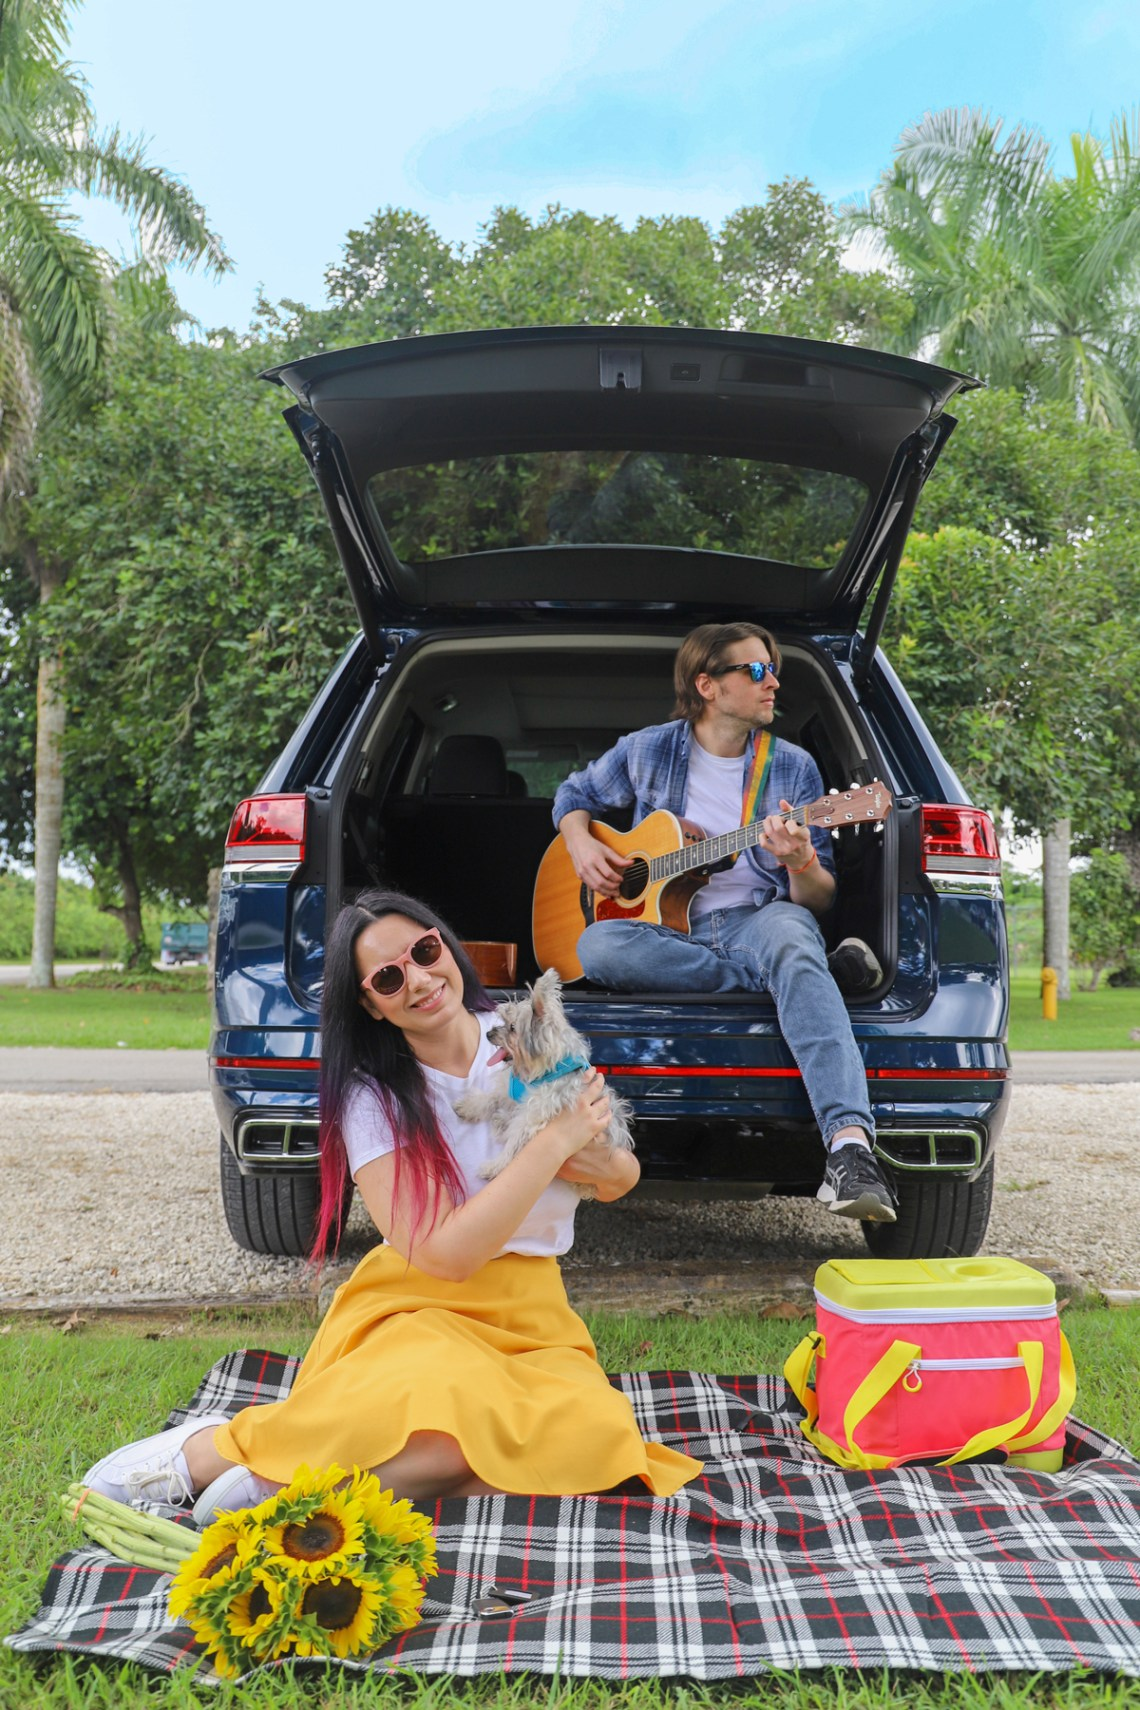 Fun Things To Do in Homestead, Florida - Have a picnic at the Fruit & Spice Park